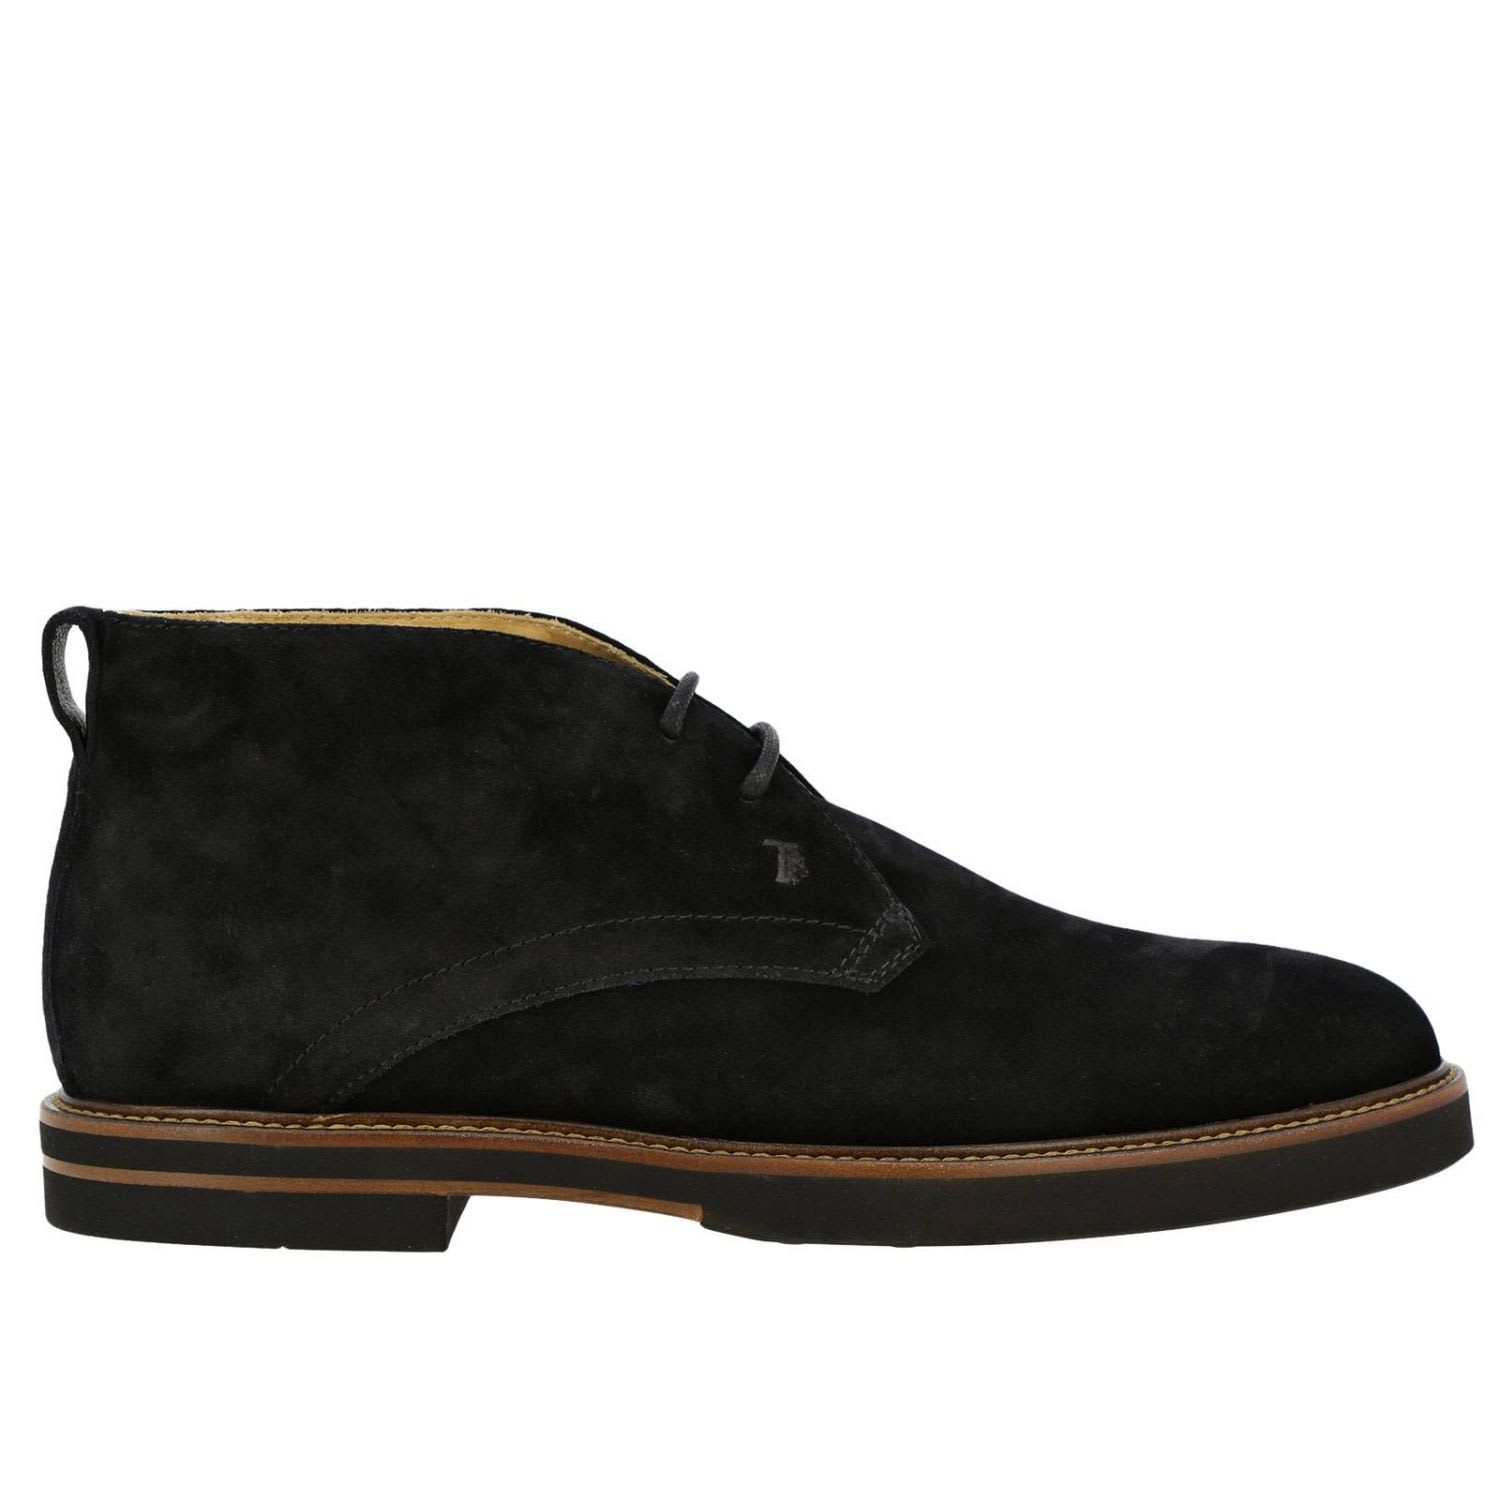 Tods Chukka Boots Tods Lace-up Chukka Boots In Suede With Rubber Bottom